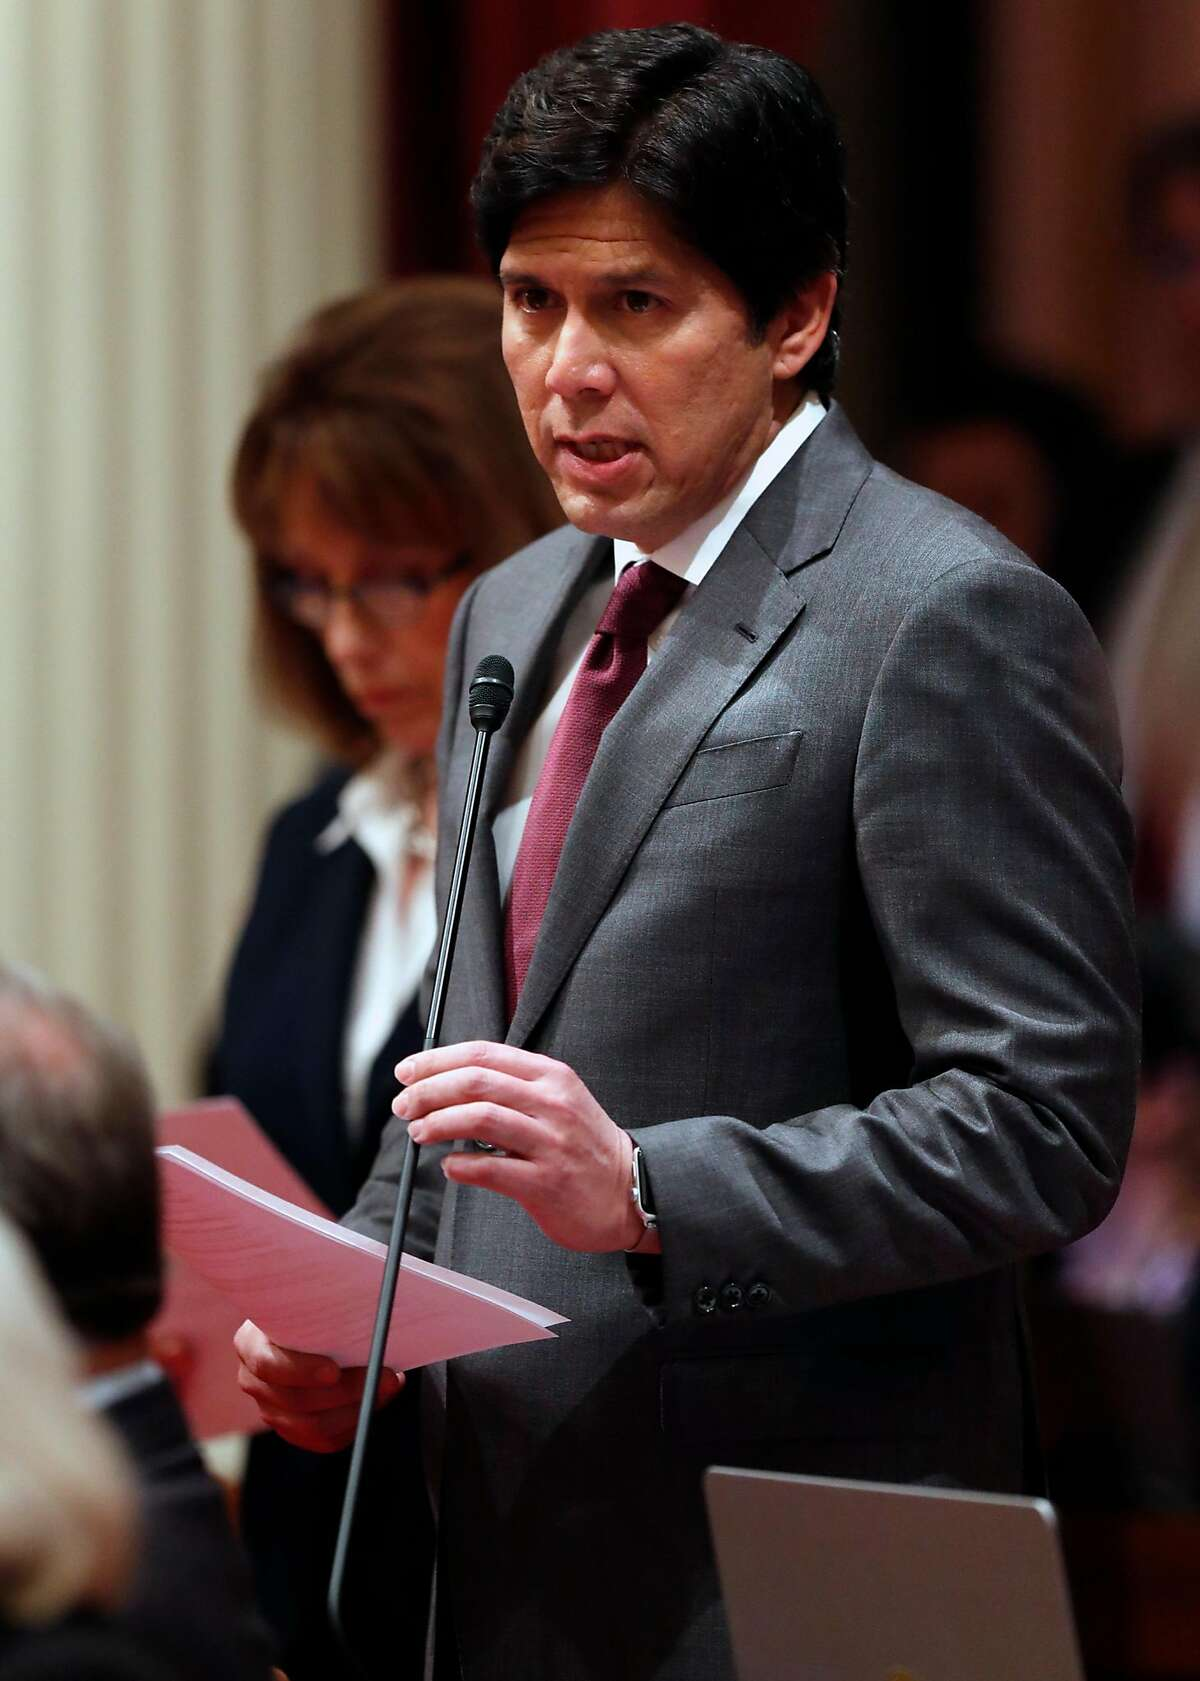 Senator Kevin de Leon, President pro Tempore of the California Senate, during session at State Capitol in Sacramento, Calif., on Wednesday, January 3, 2018.